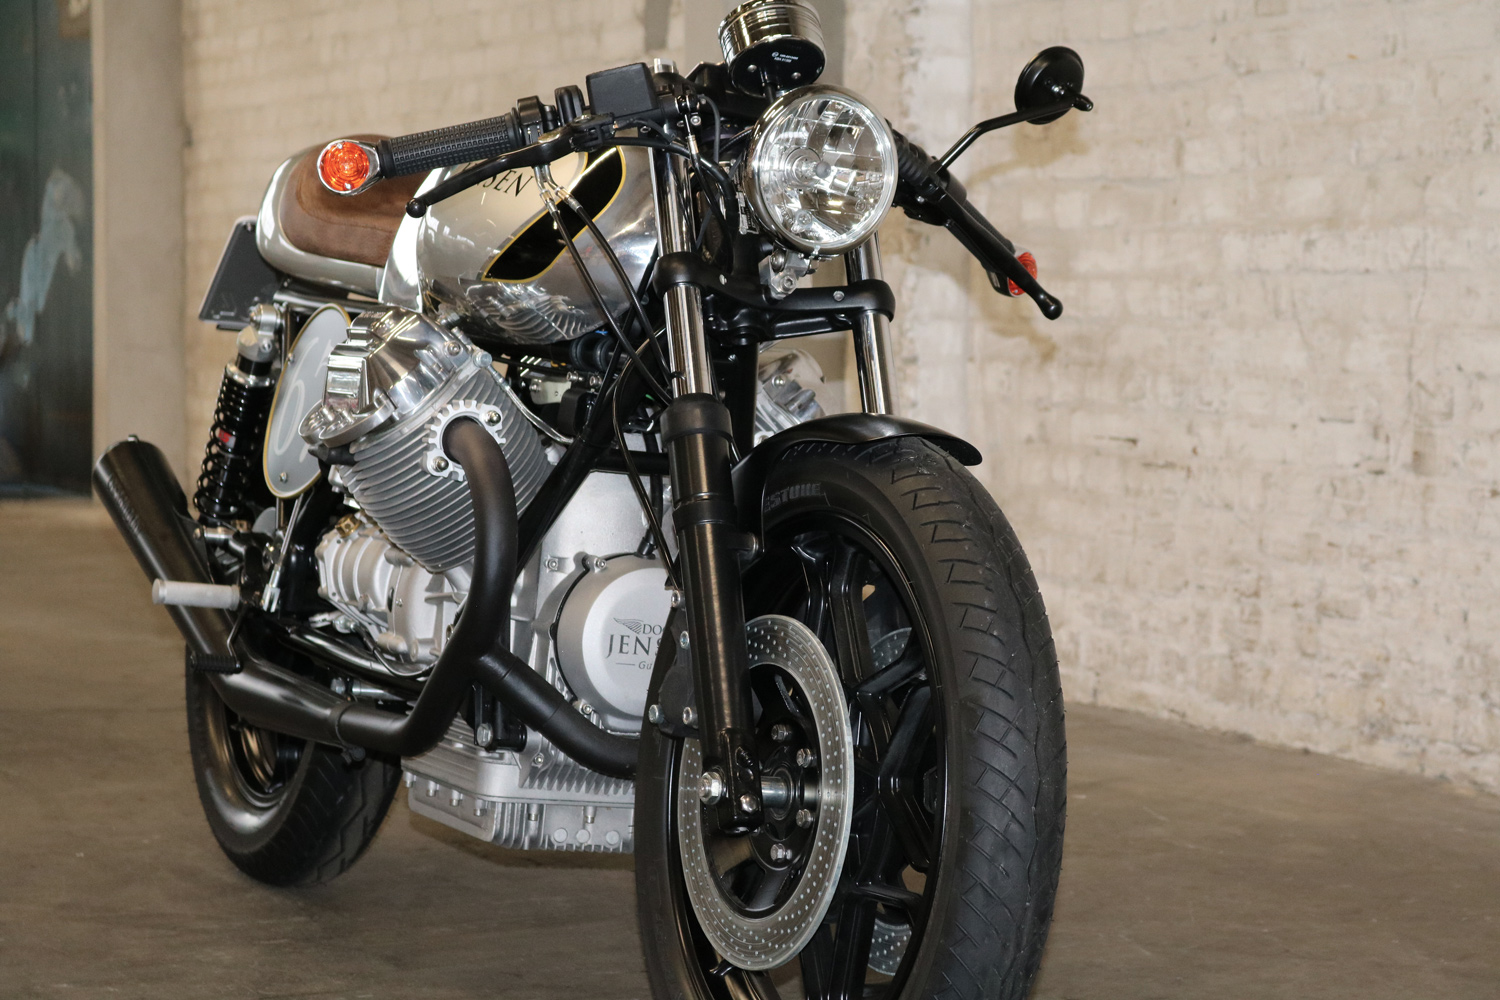 moto guzzi cafe racer kaufen doc jensen guzzi. Black Bedroom Furniture Sets. Home Design Ideas